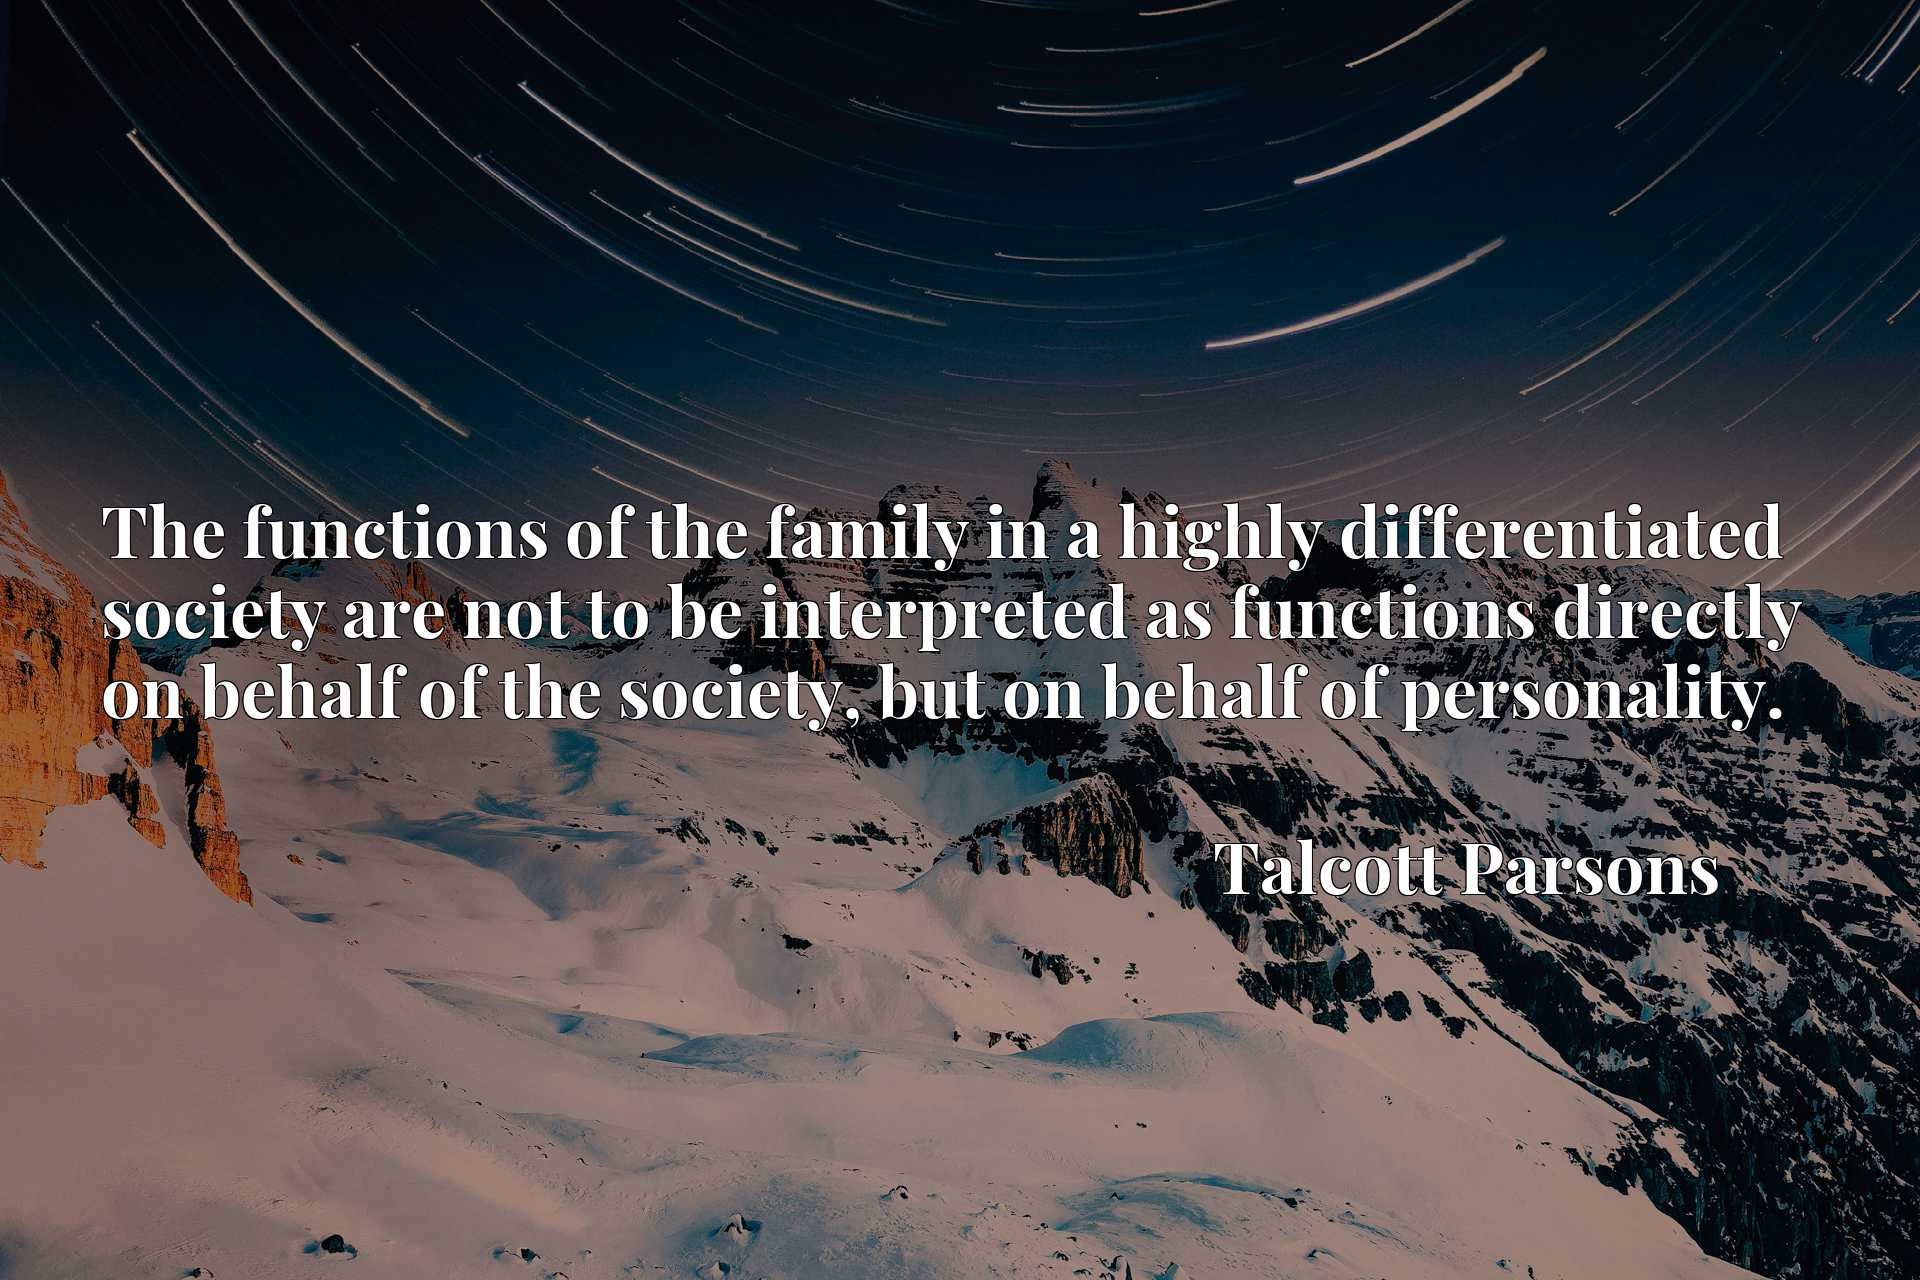 The functions of the family in a highly differentiated society are not to be interpreted as functions directly on behalf of the society, but on behalf of personality.